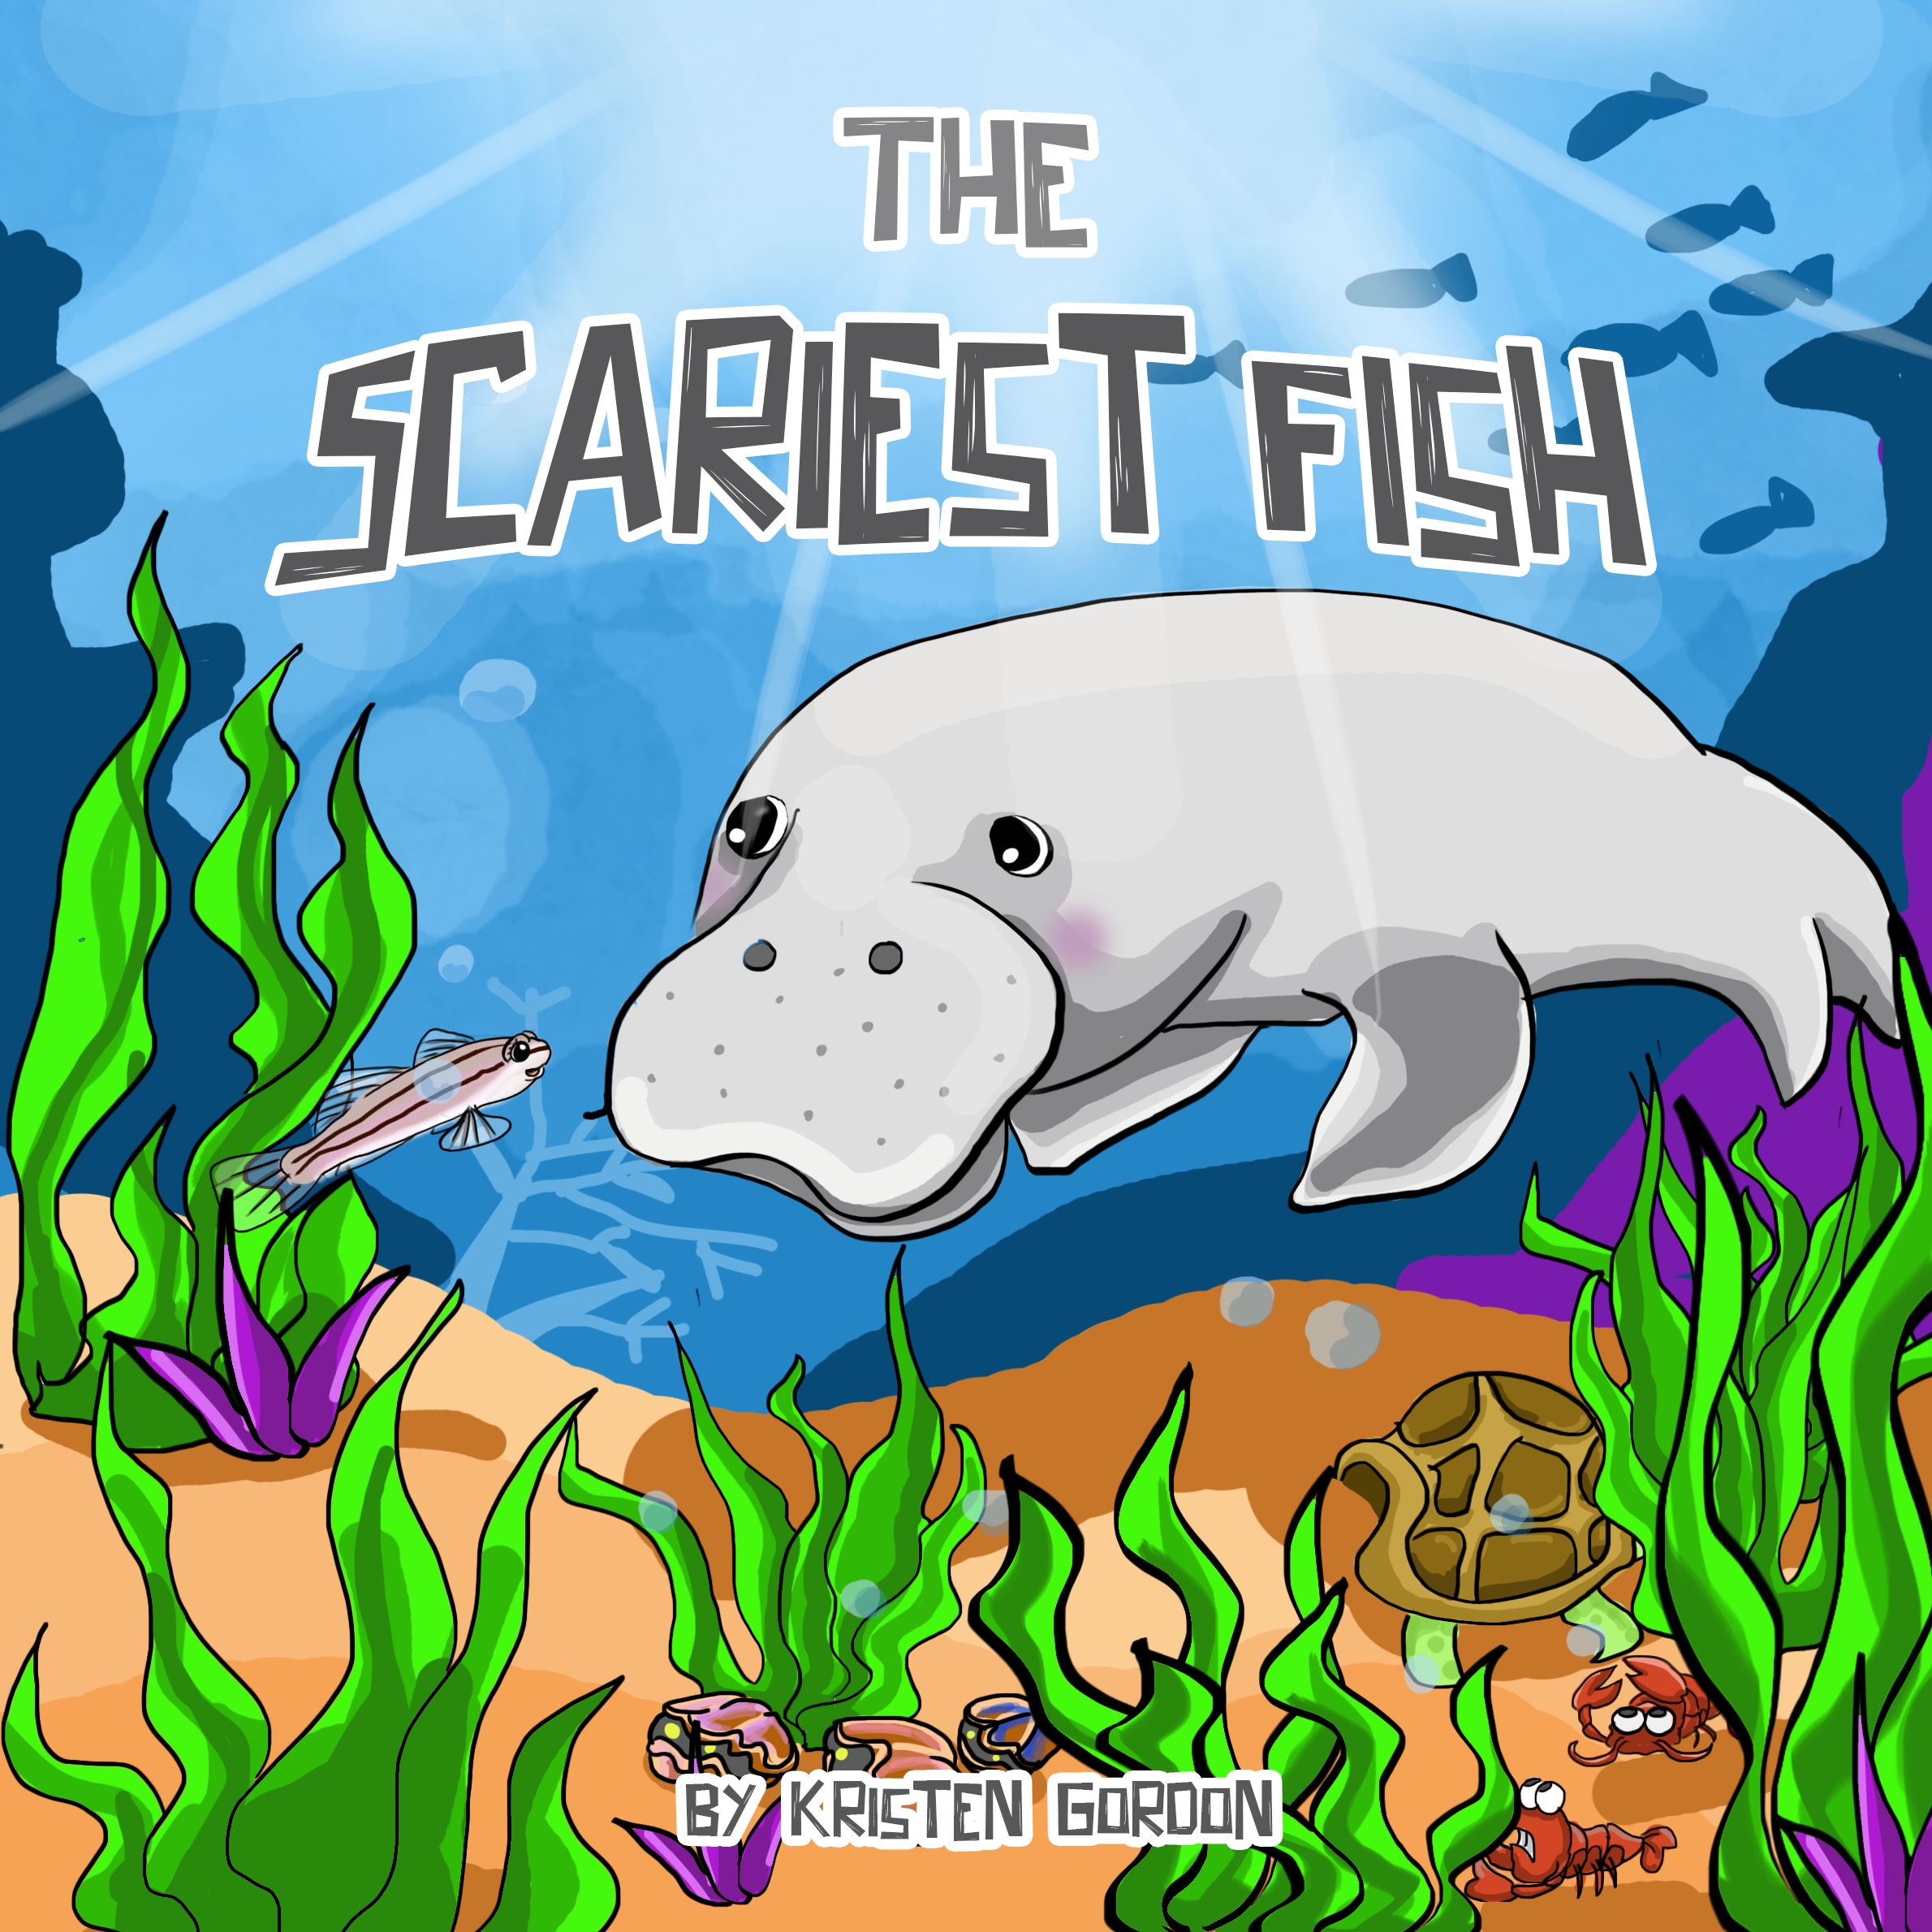 The Scariest Fish